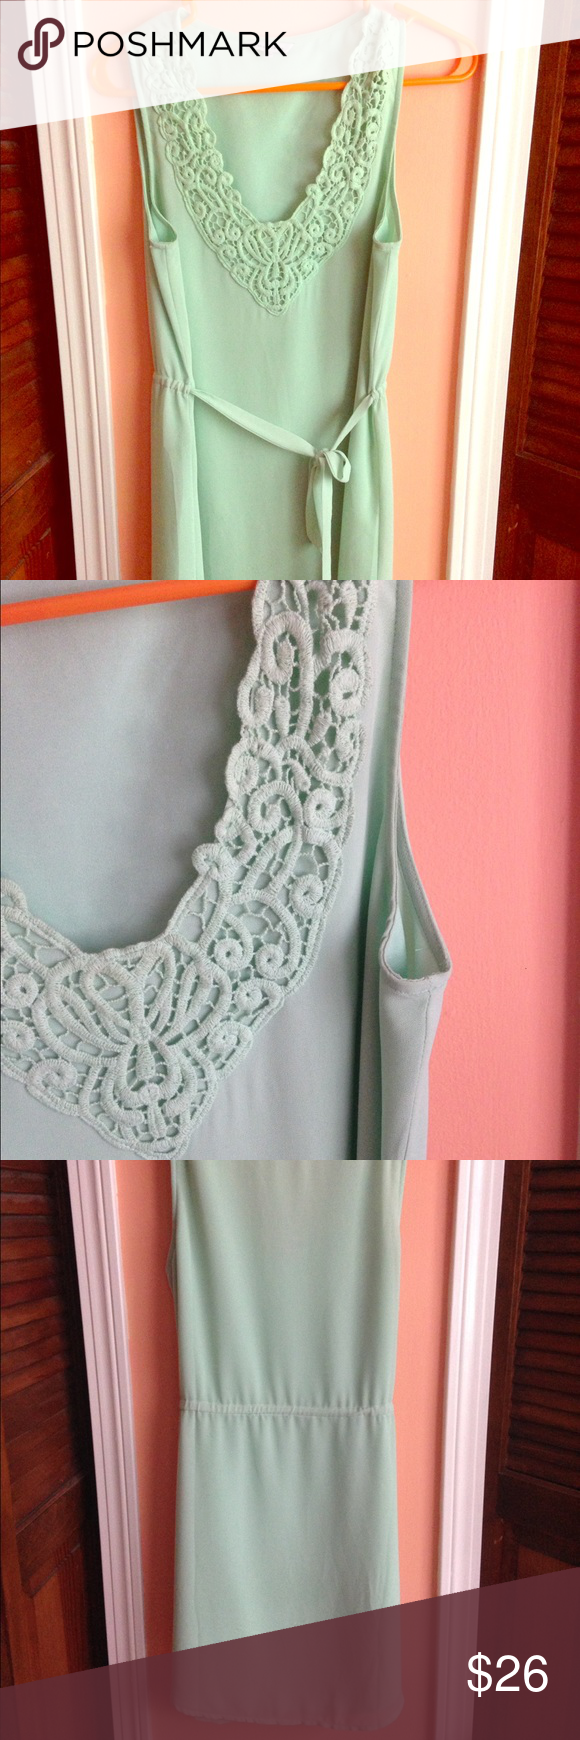 Mint Lace Dress Beautiful, feminine, and dainty! Not sheer, needs no slip. Tie waist that wraps through the back of the dress, providing a cinch when tightened. Longer in front and back and drawn up on the sides of the thigh. Very sexy and classy dress. Dress it up with your favorite heels and earrings, or dress it down with flats and your trusty denim jacket! ✌🏼️ Naked Zebra Dresses Mini